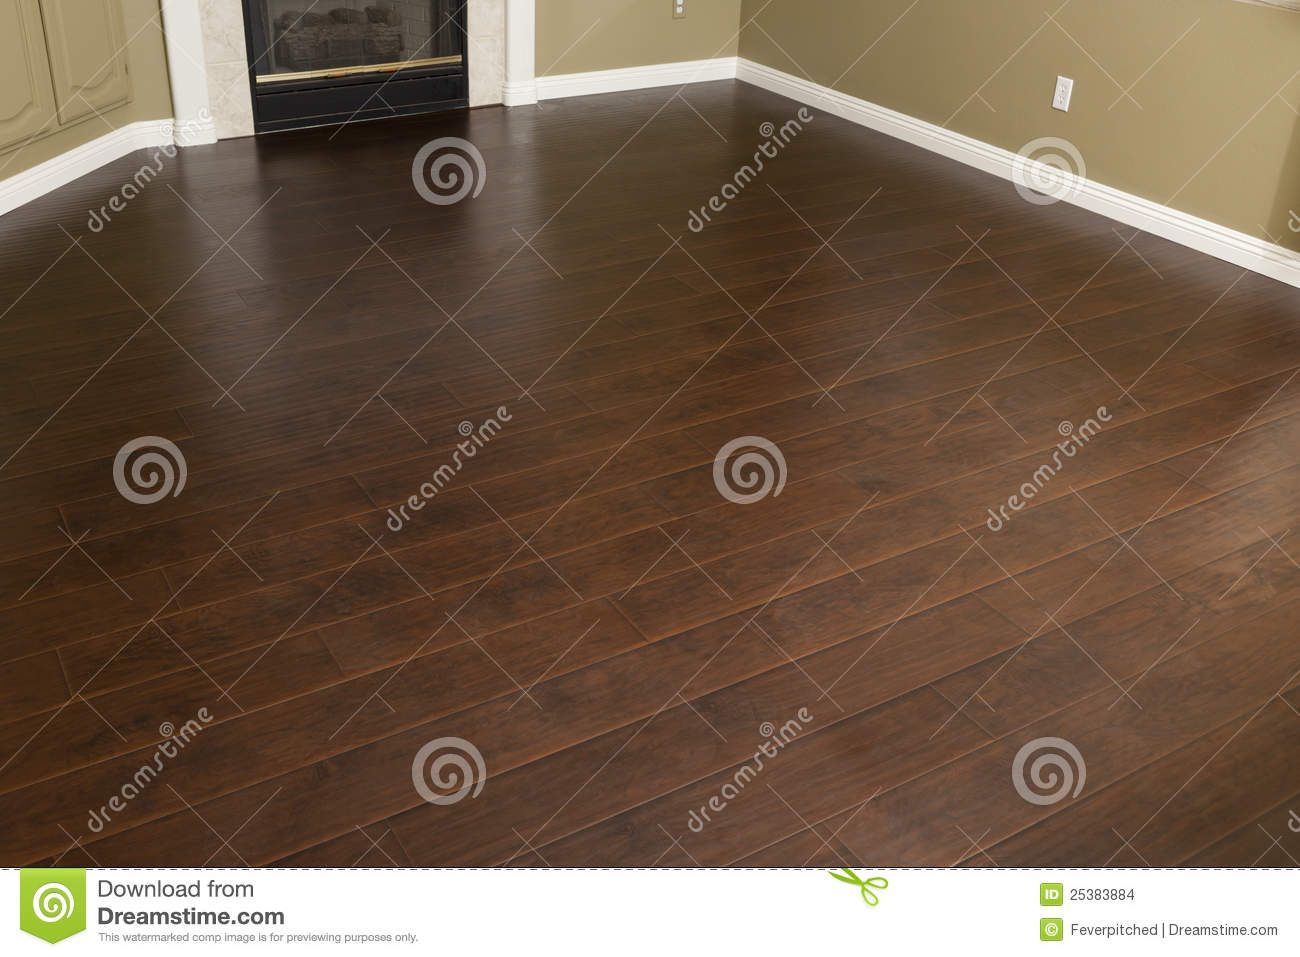 Empty Room with Brown Laminate Flooring